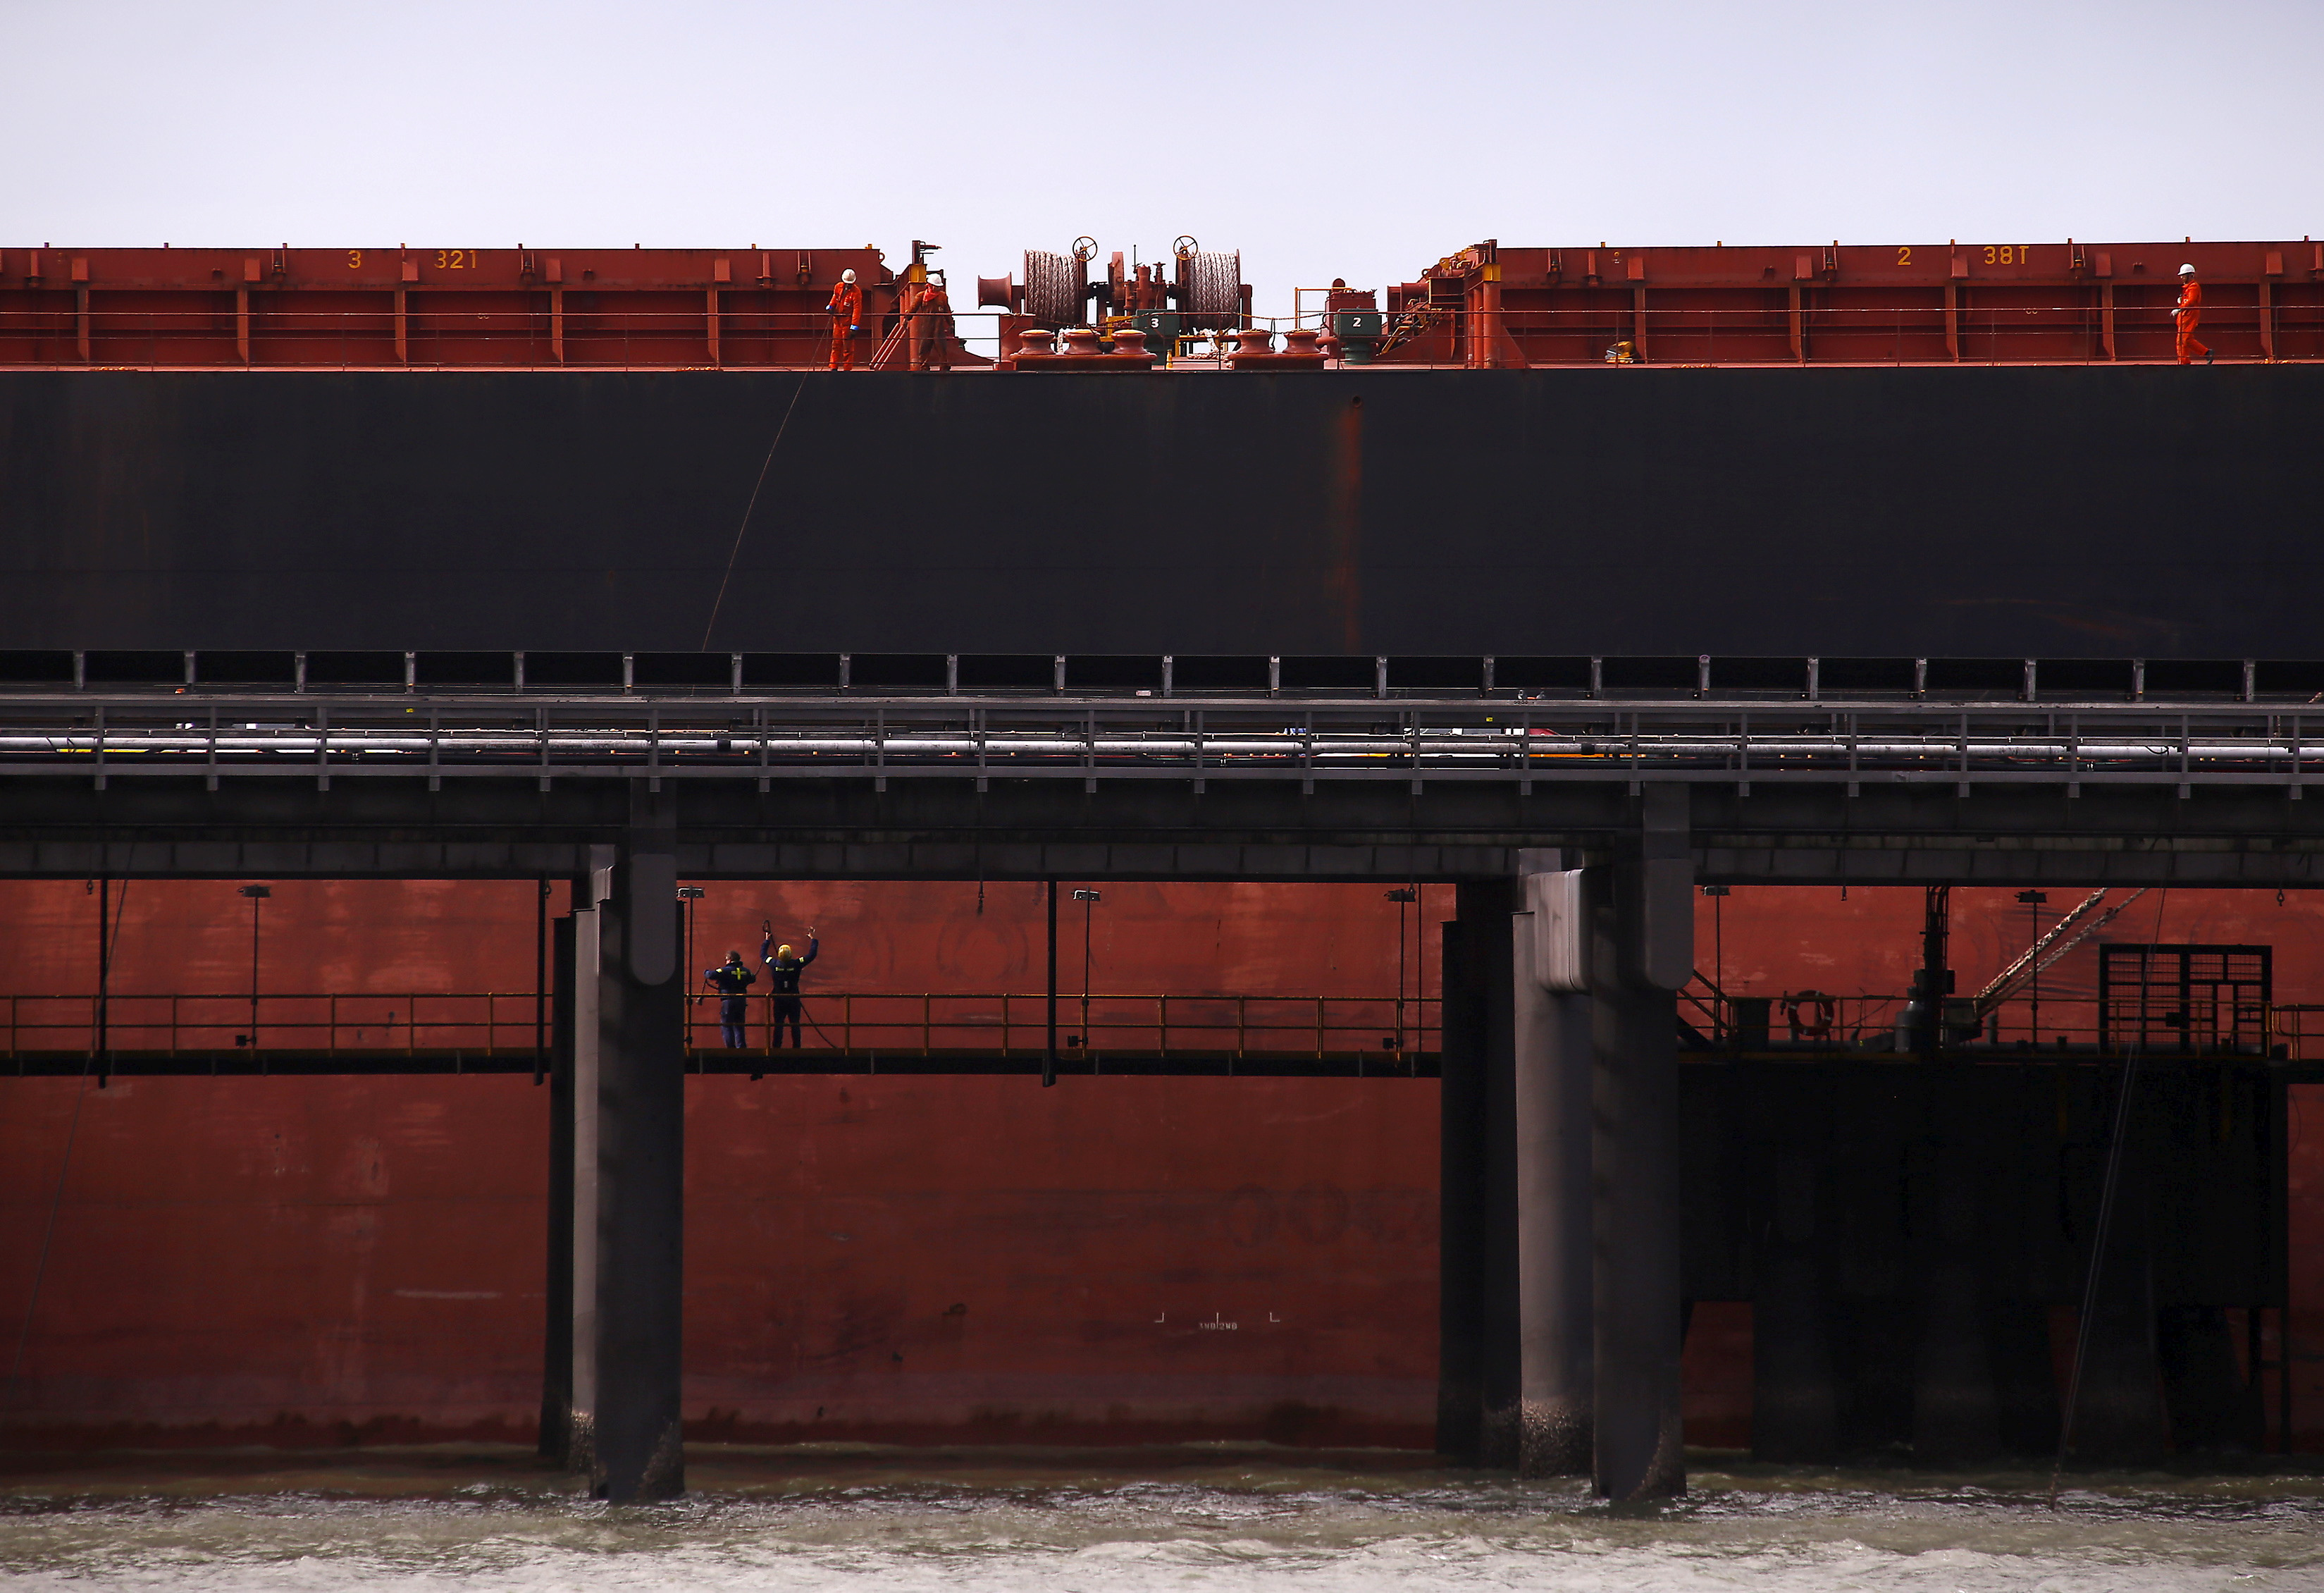 Port workers load a ship with coal at the RG Tanna Coal Terminal located at the town of Gladstone in Queensland, Australia, June 12, 2015.   REUTERS/David Gray/File Photo